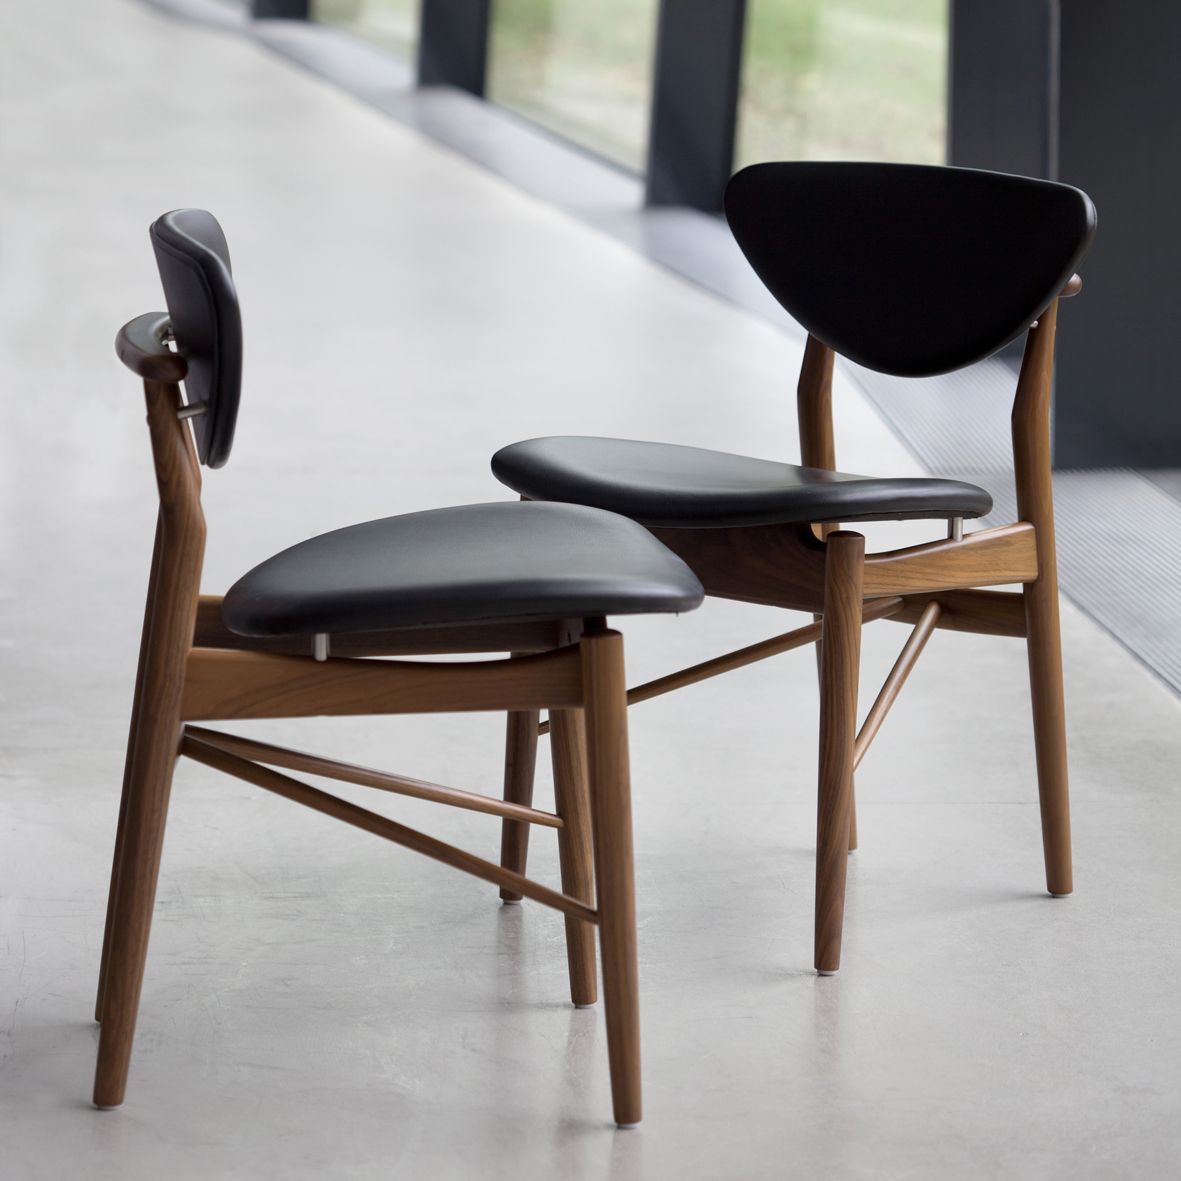 Danish Chair Plans Finn Juhl 108 Chair Classic House And Design